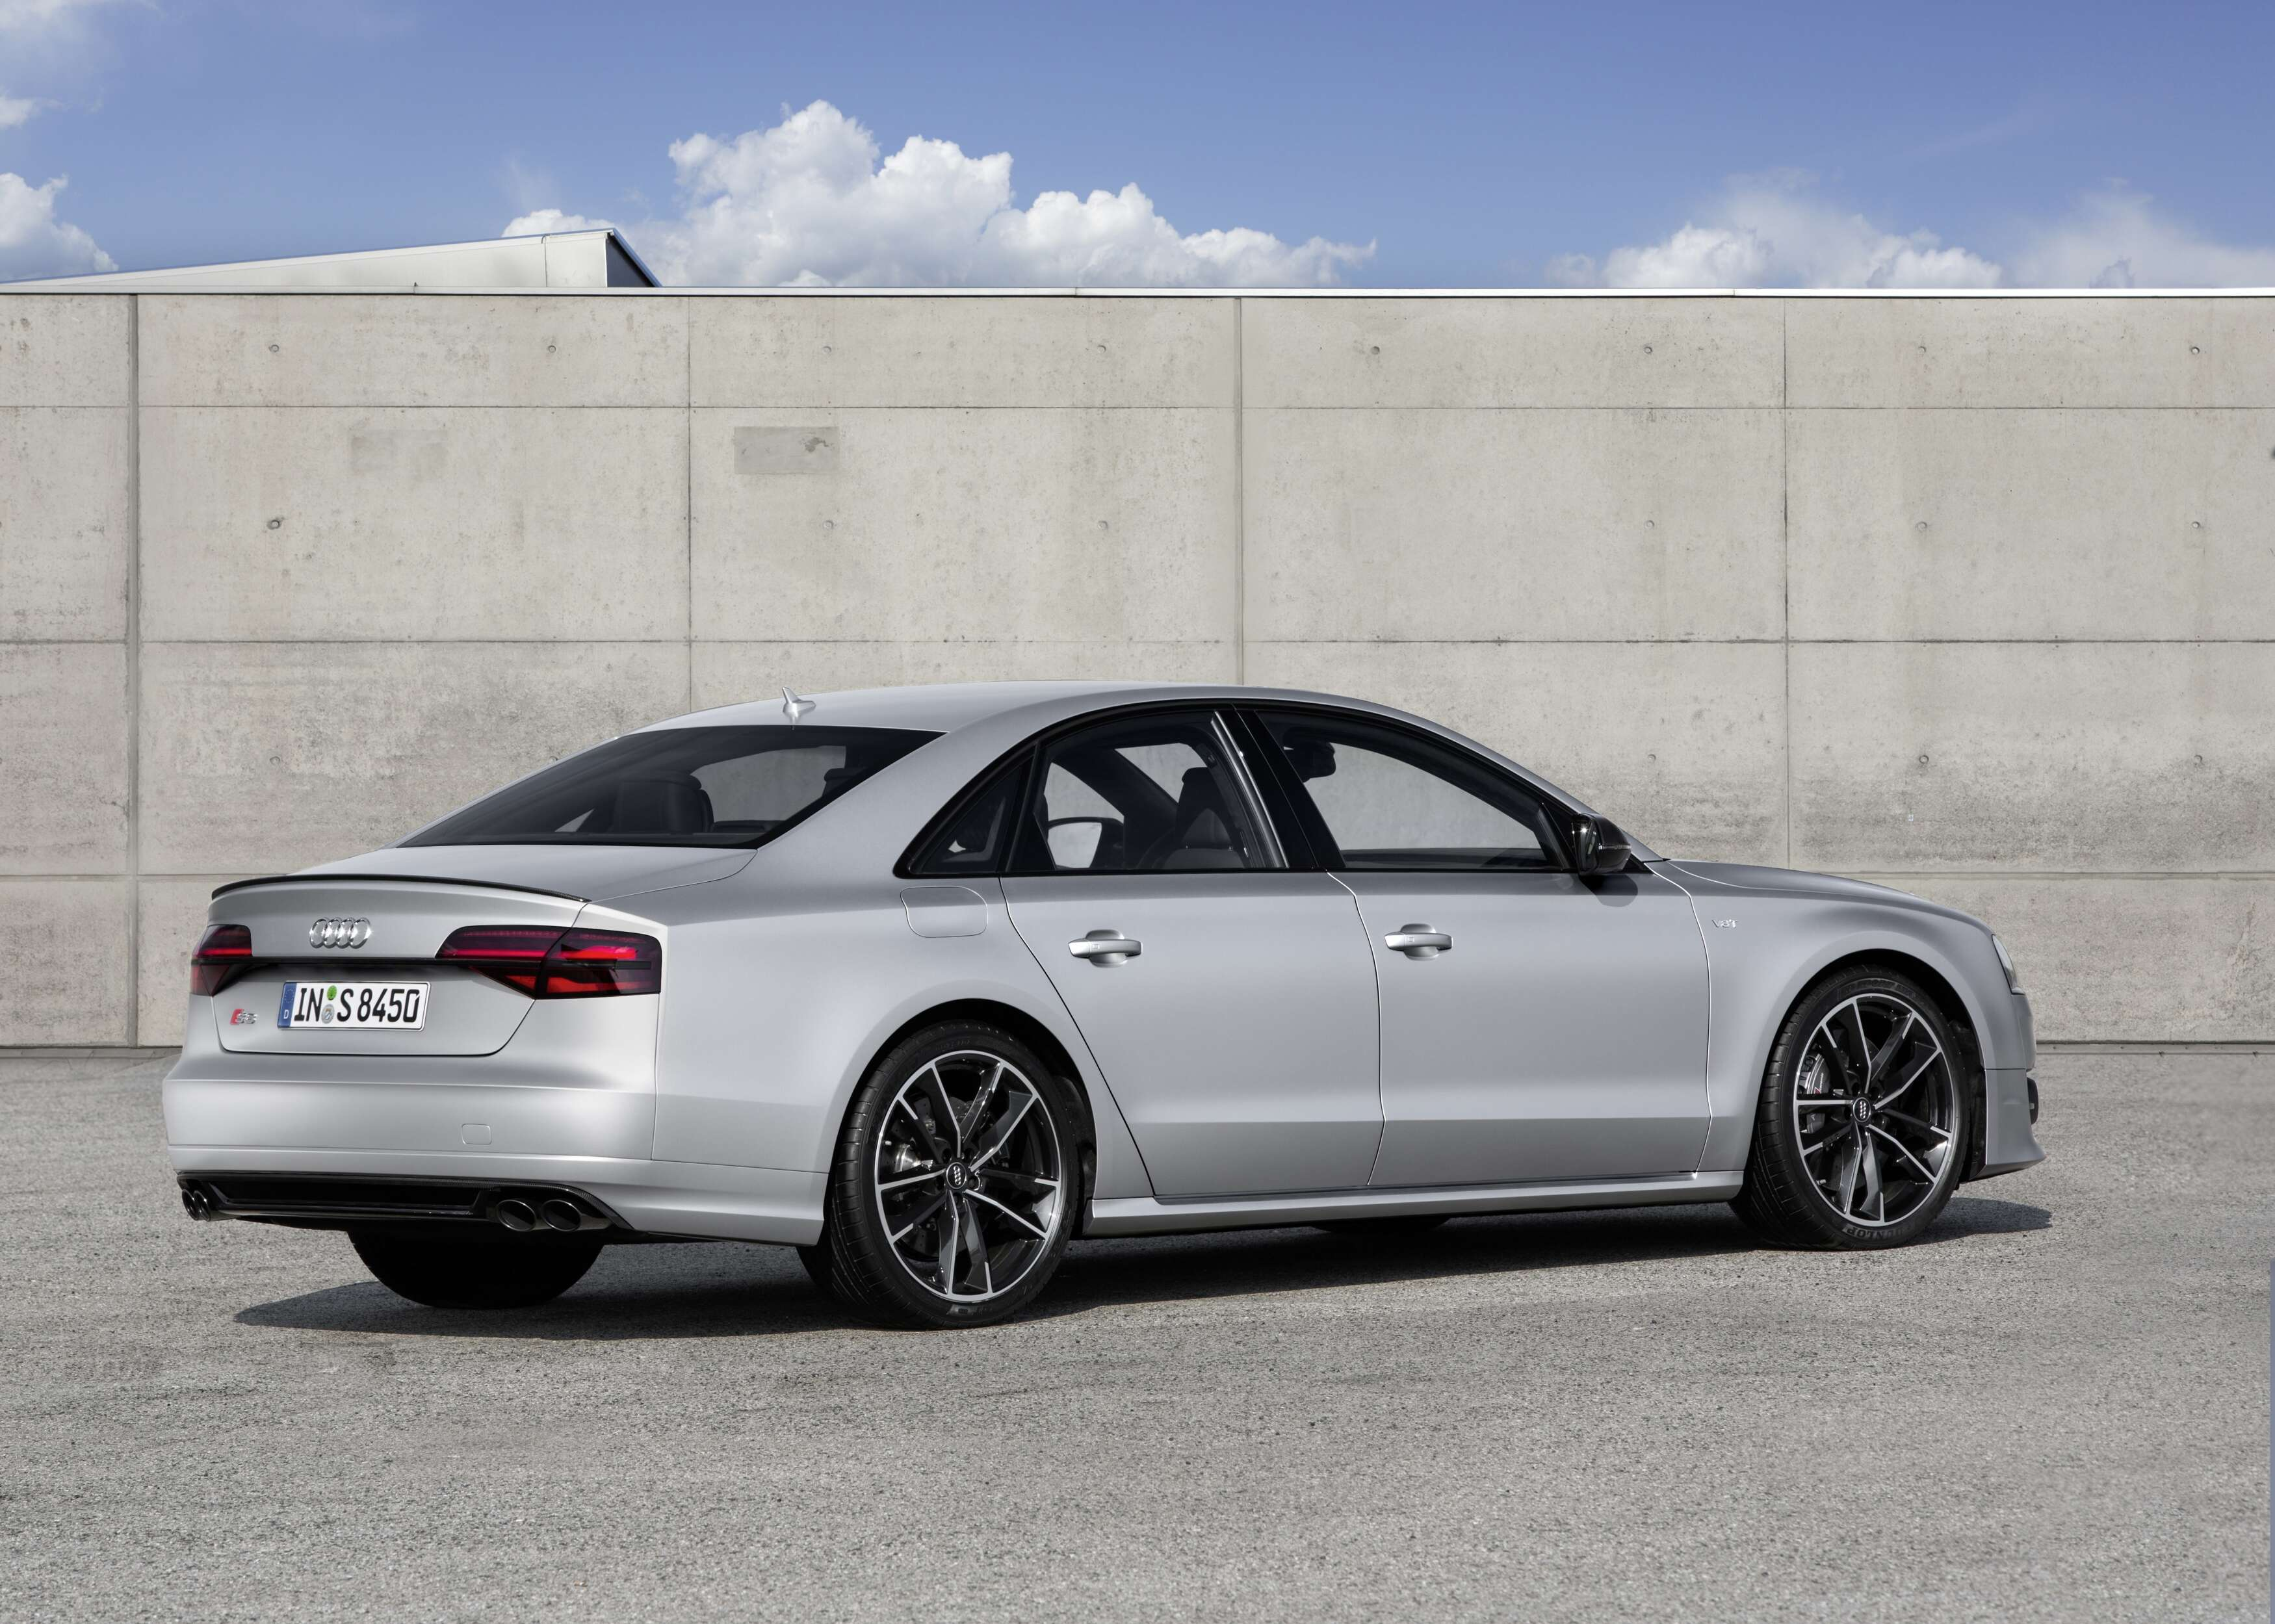 Audi S Plus Romps With The Worlds Fastest FourDoors The Drive - 2018 audi s8